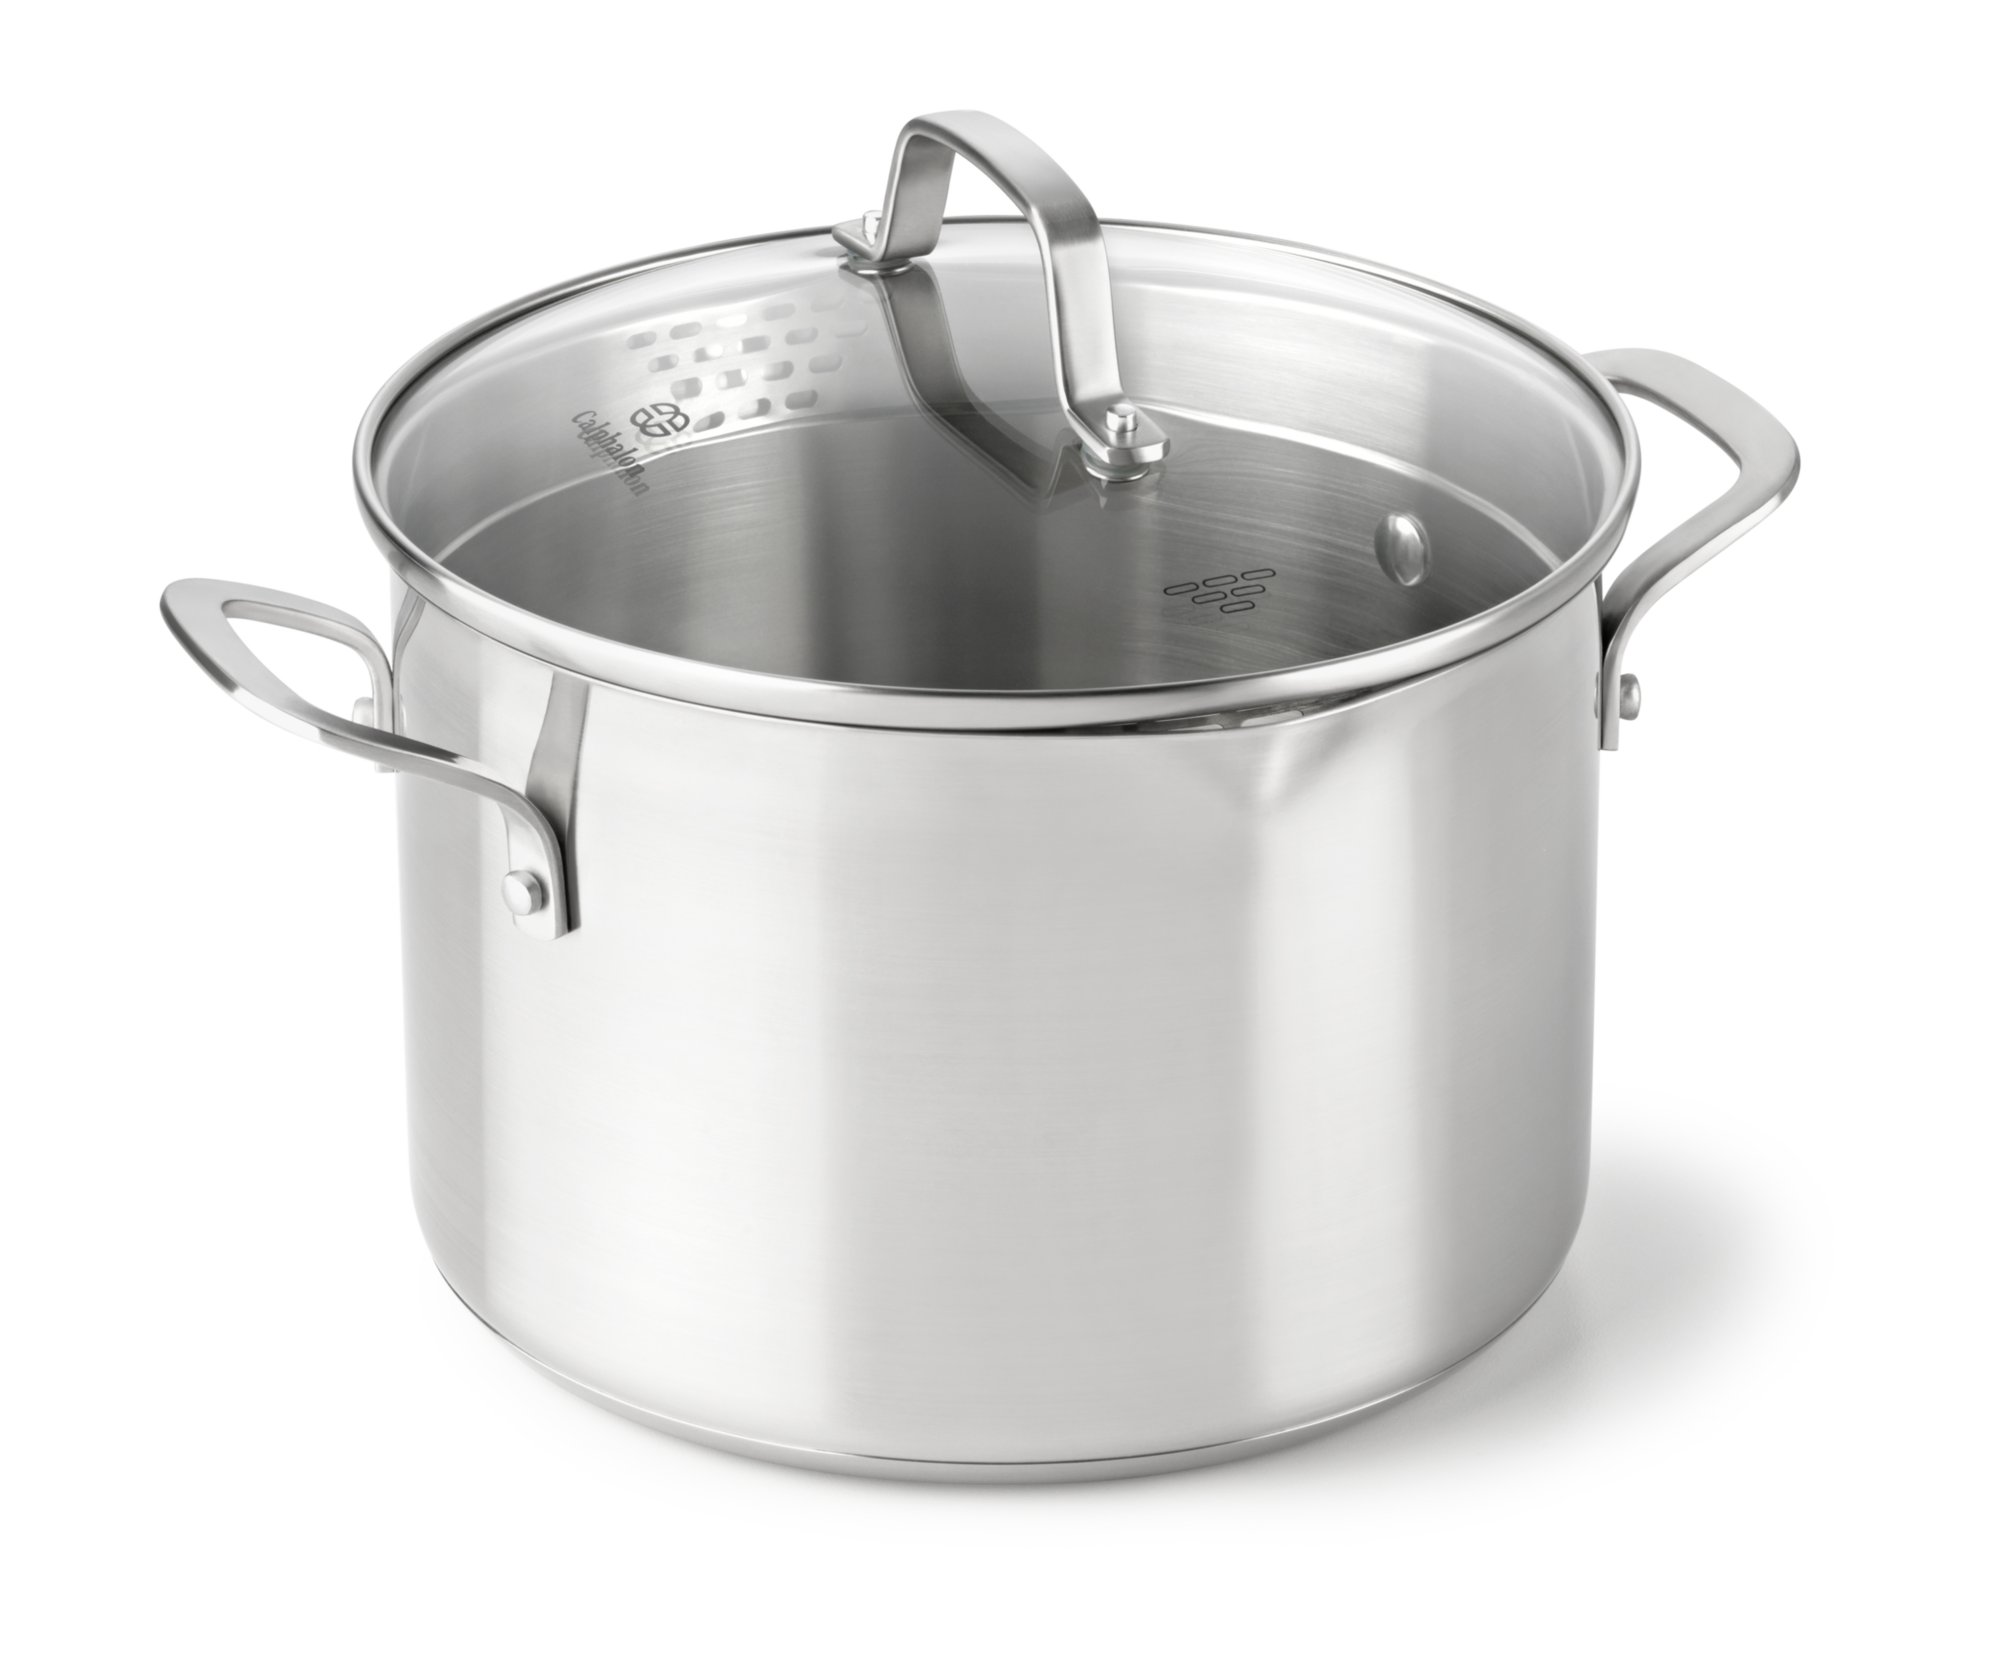 Calphalon Classic Stainless Steel 6-qt. Stock Pot with Cover